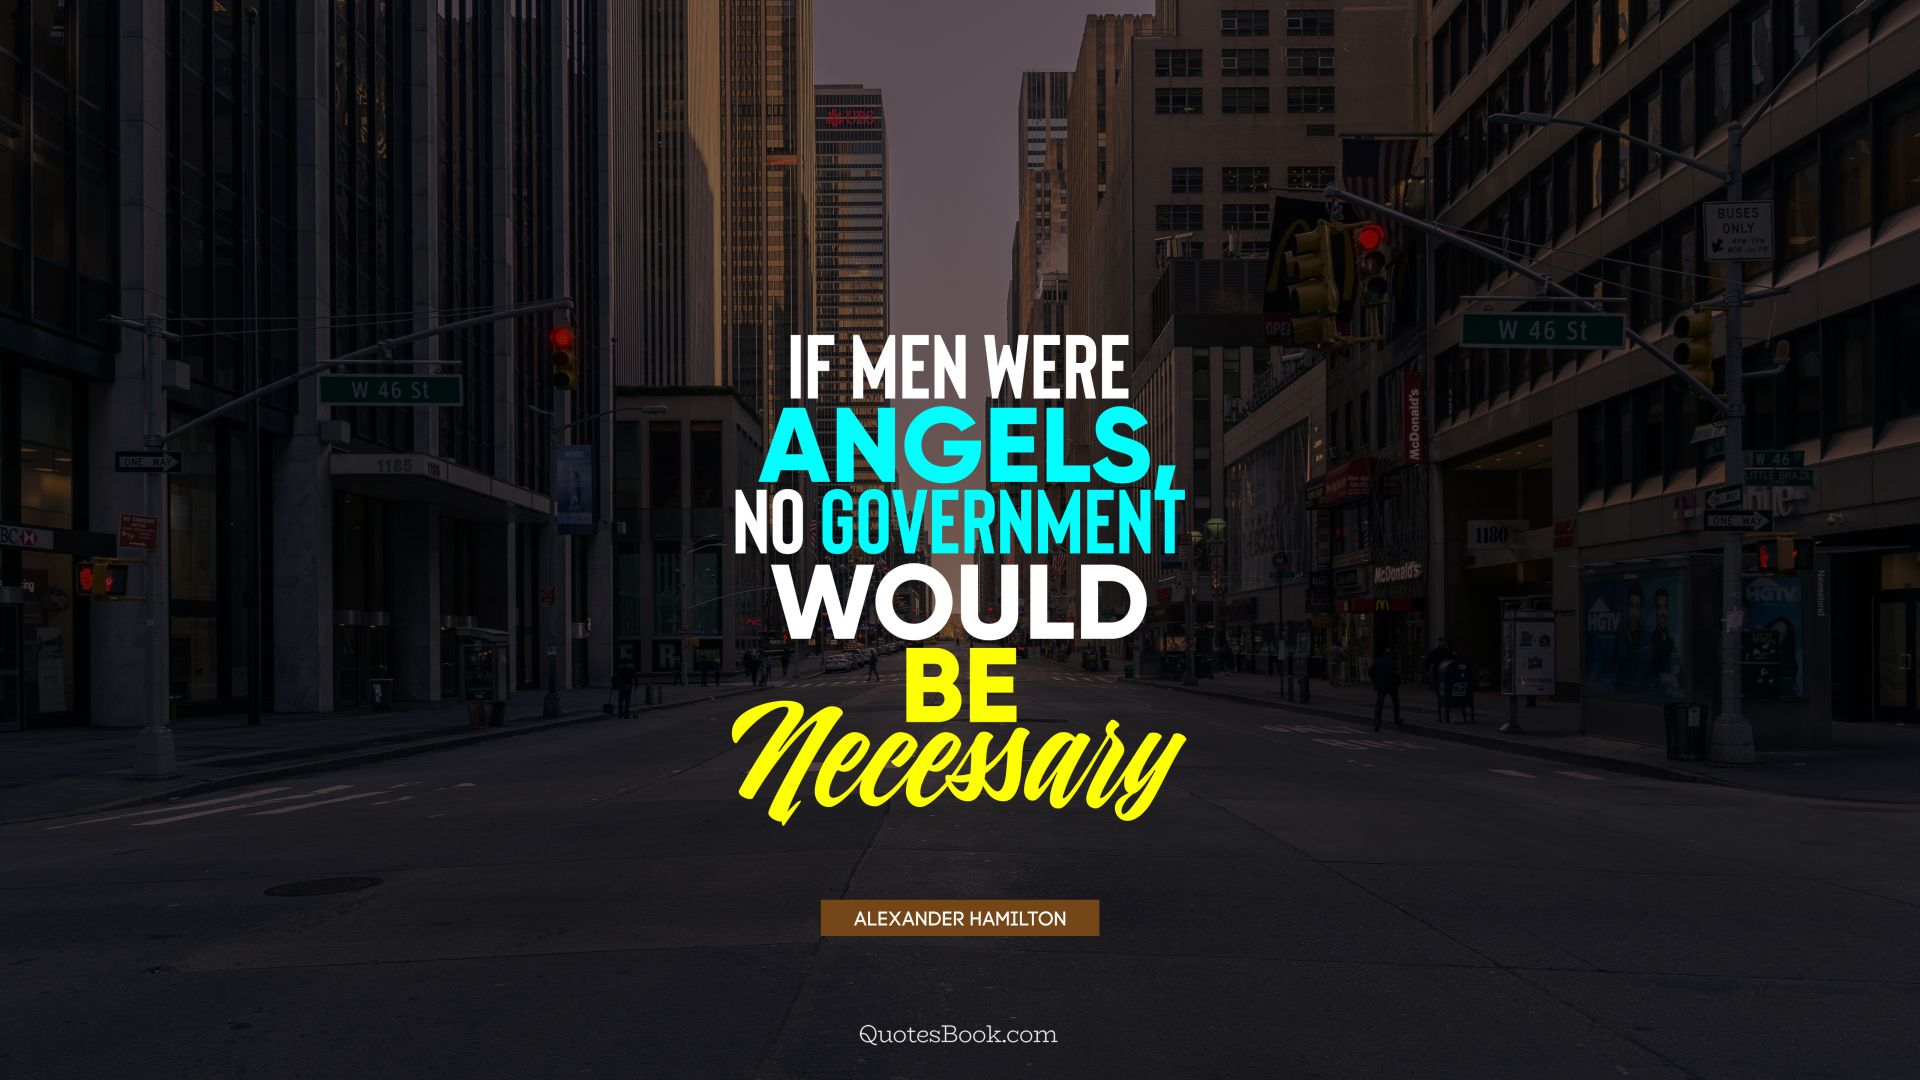 If men were angels, no government would be necessary. - Quote by Alexander Hamilton